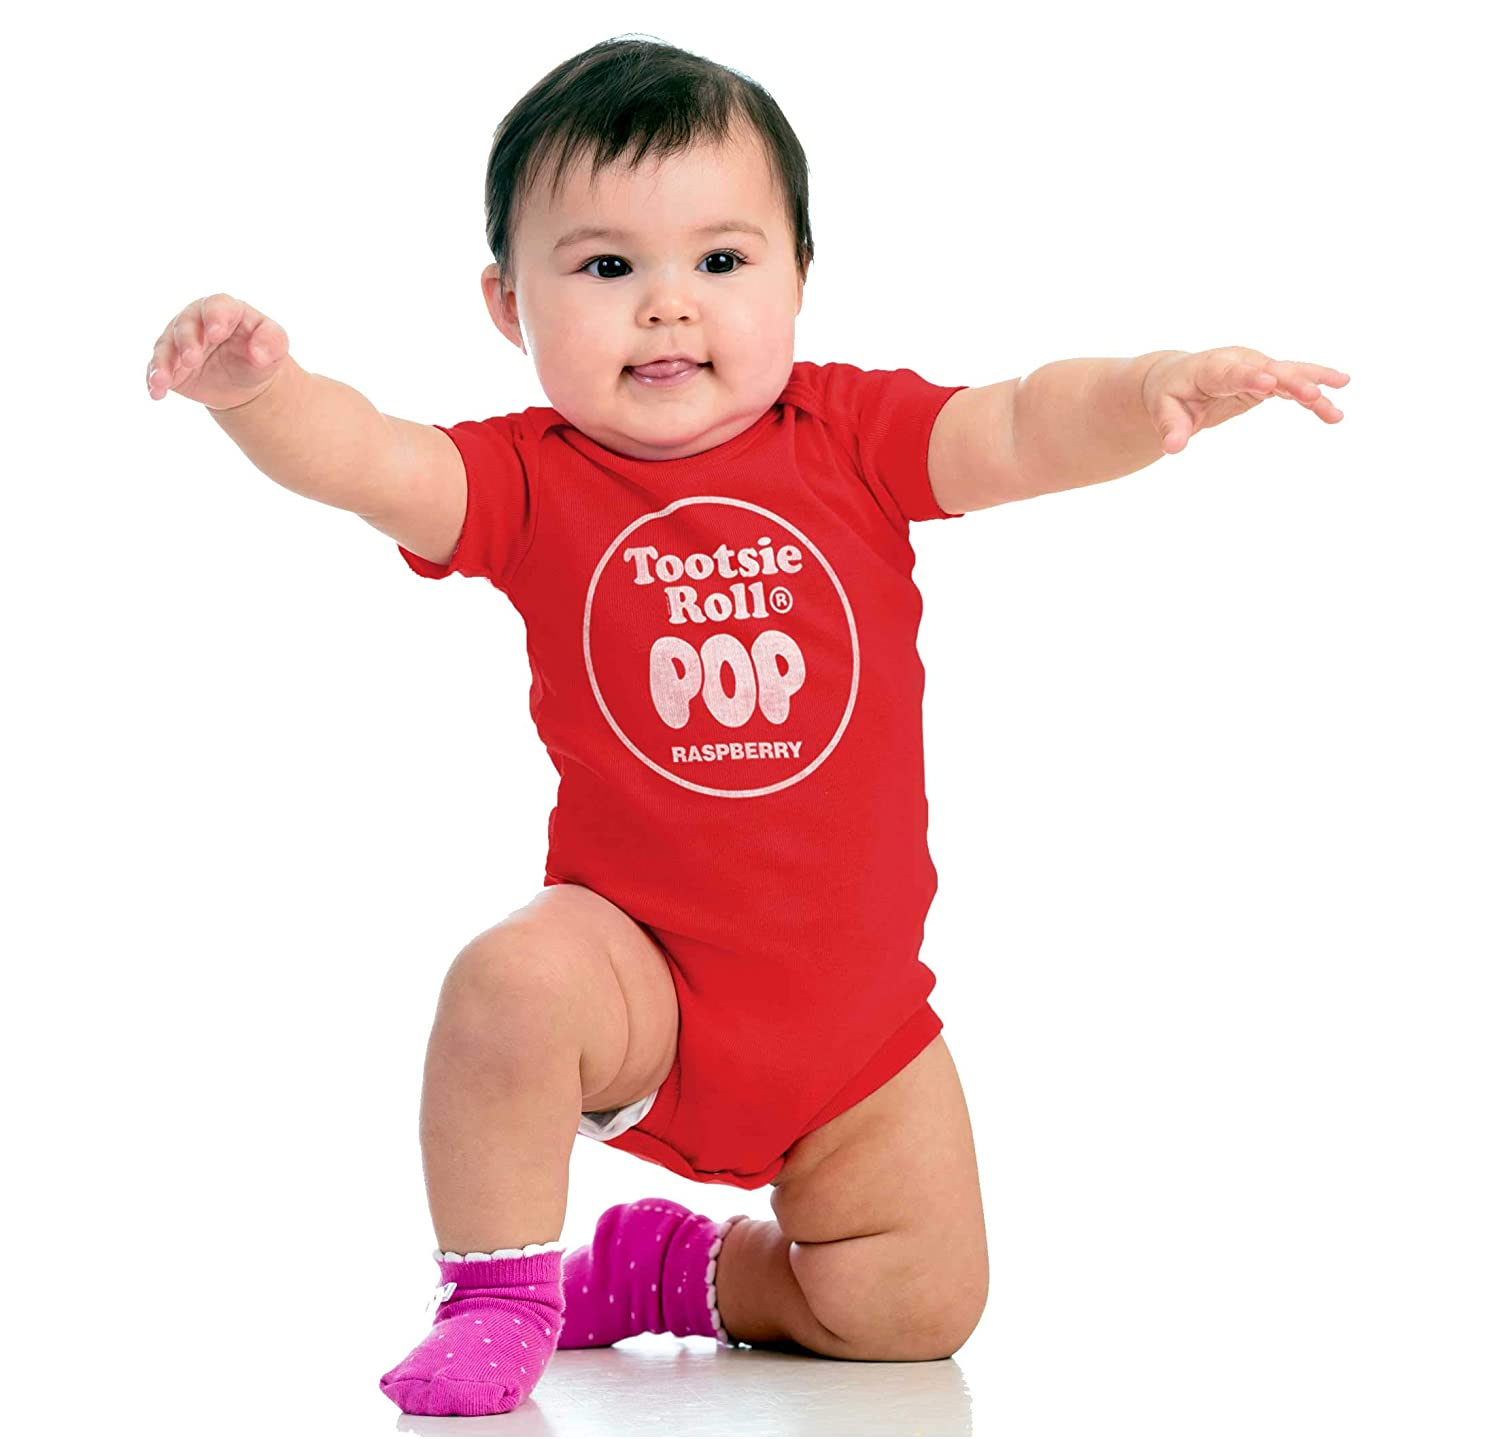 Raspberry Tootsie Roll Vintage Flavored Pop Infant Toddler T Shirt